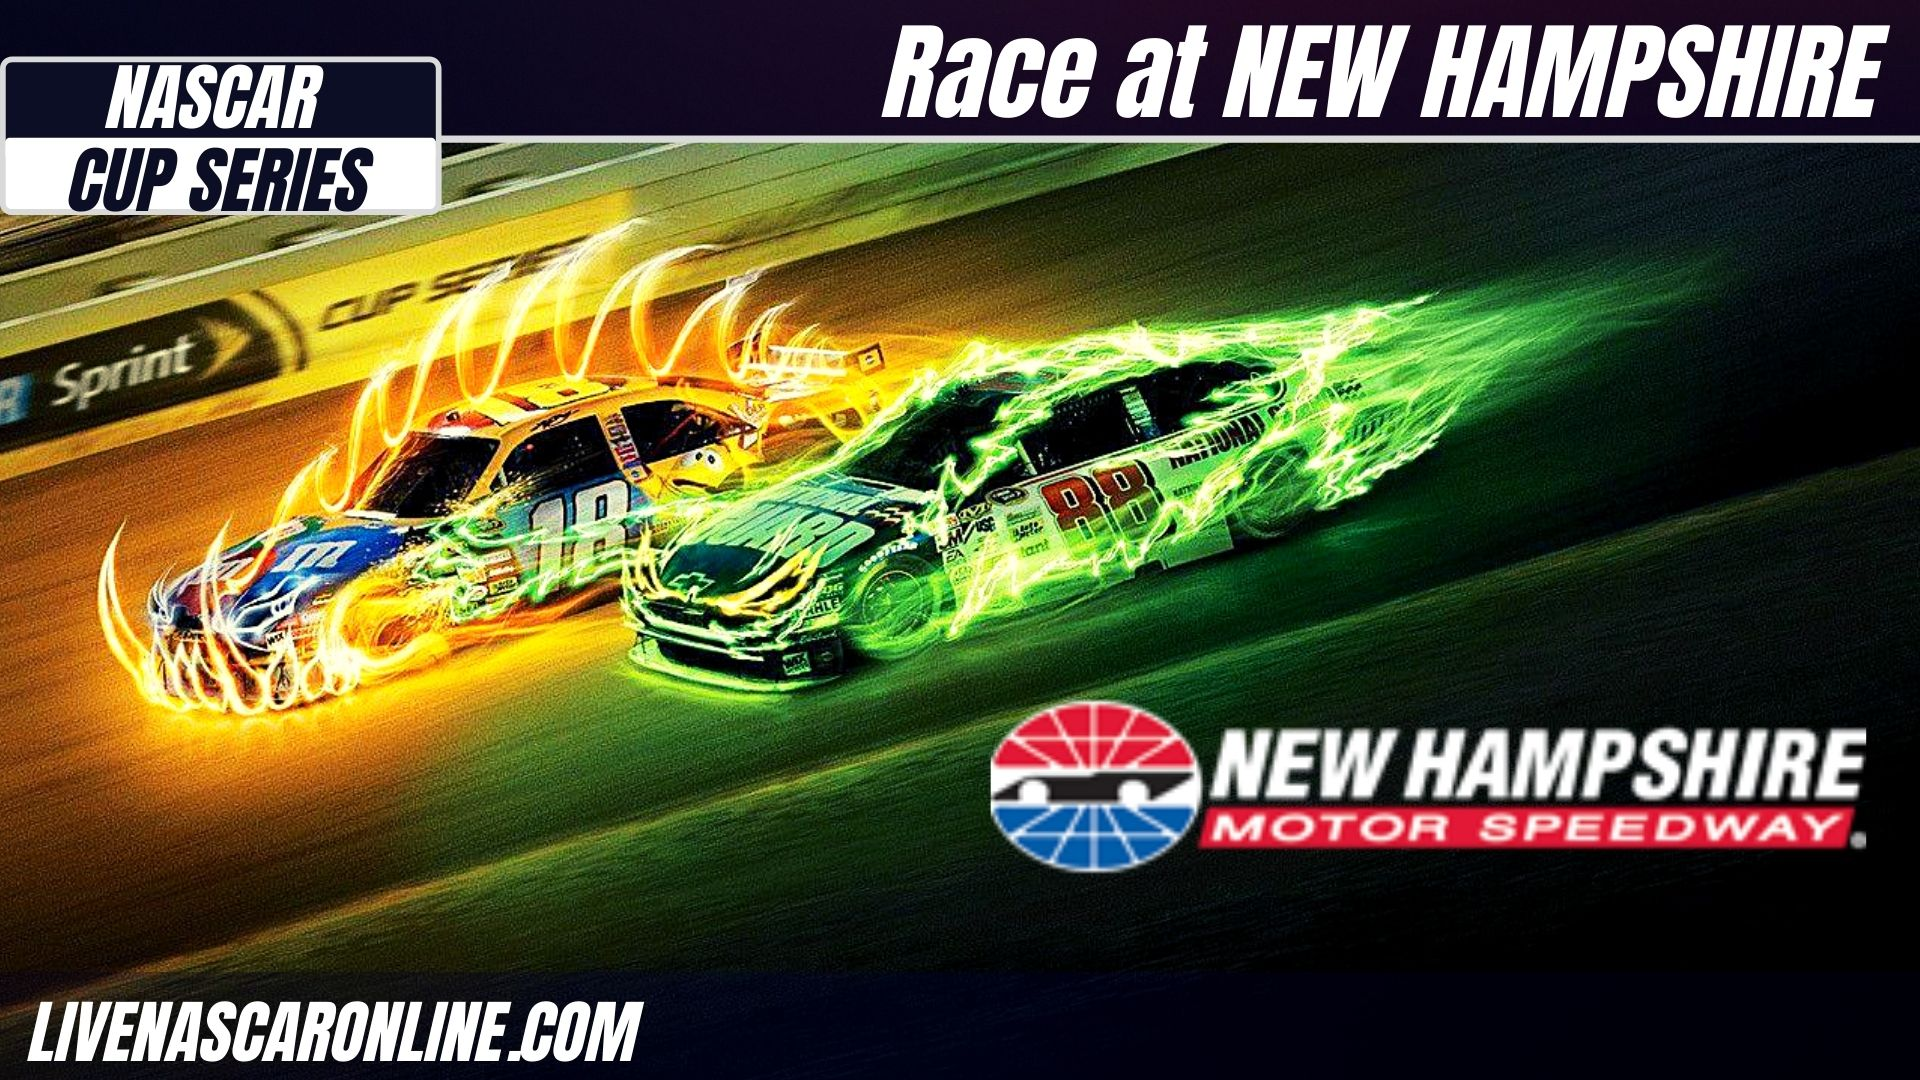 NASCAR Race at New Hampshire Live Stream 2021